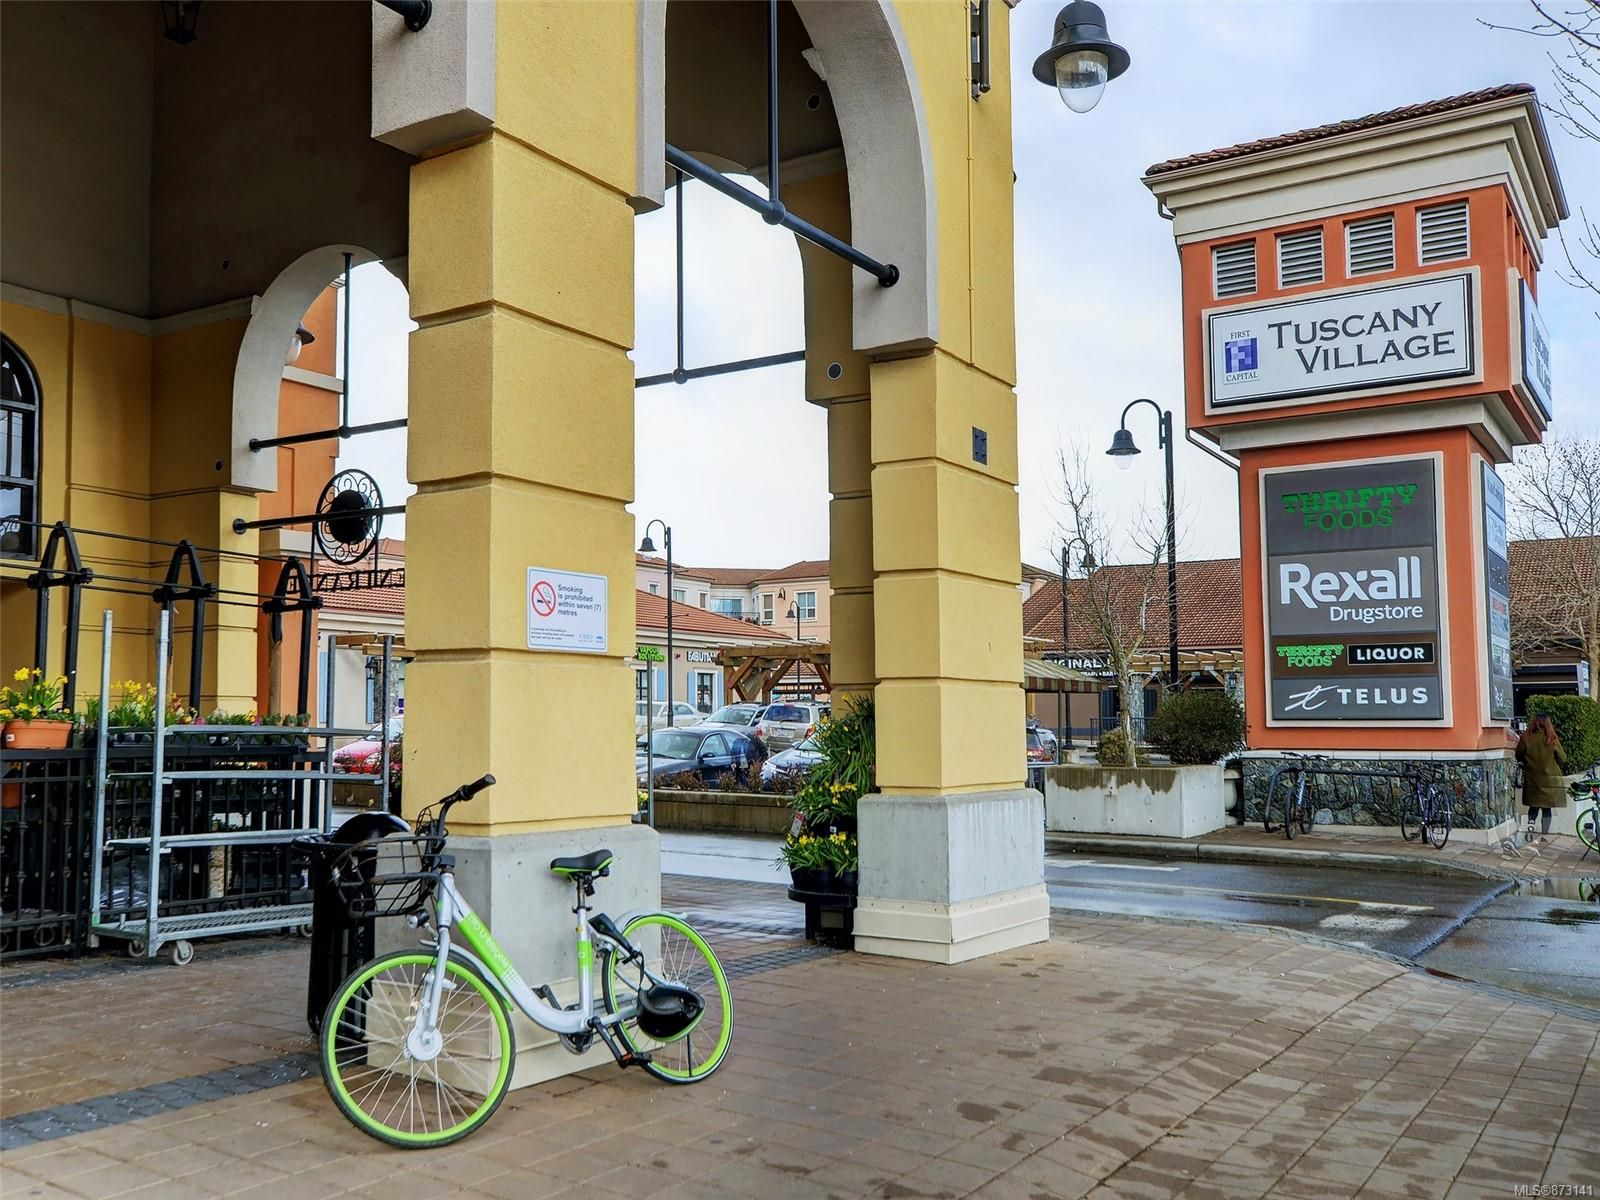 Tuscany Village was built in 2007 and includes over 15 shops, residential & commercial suites and both above & below ground parking